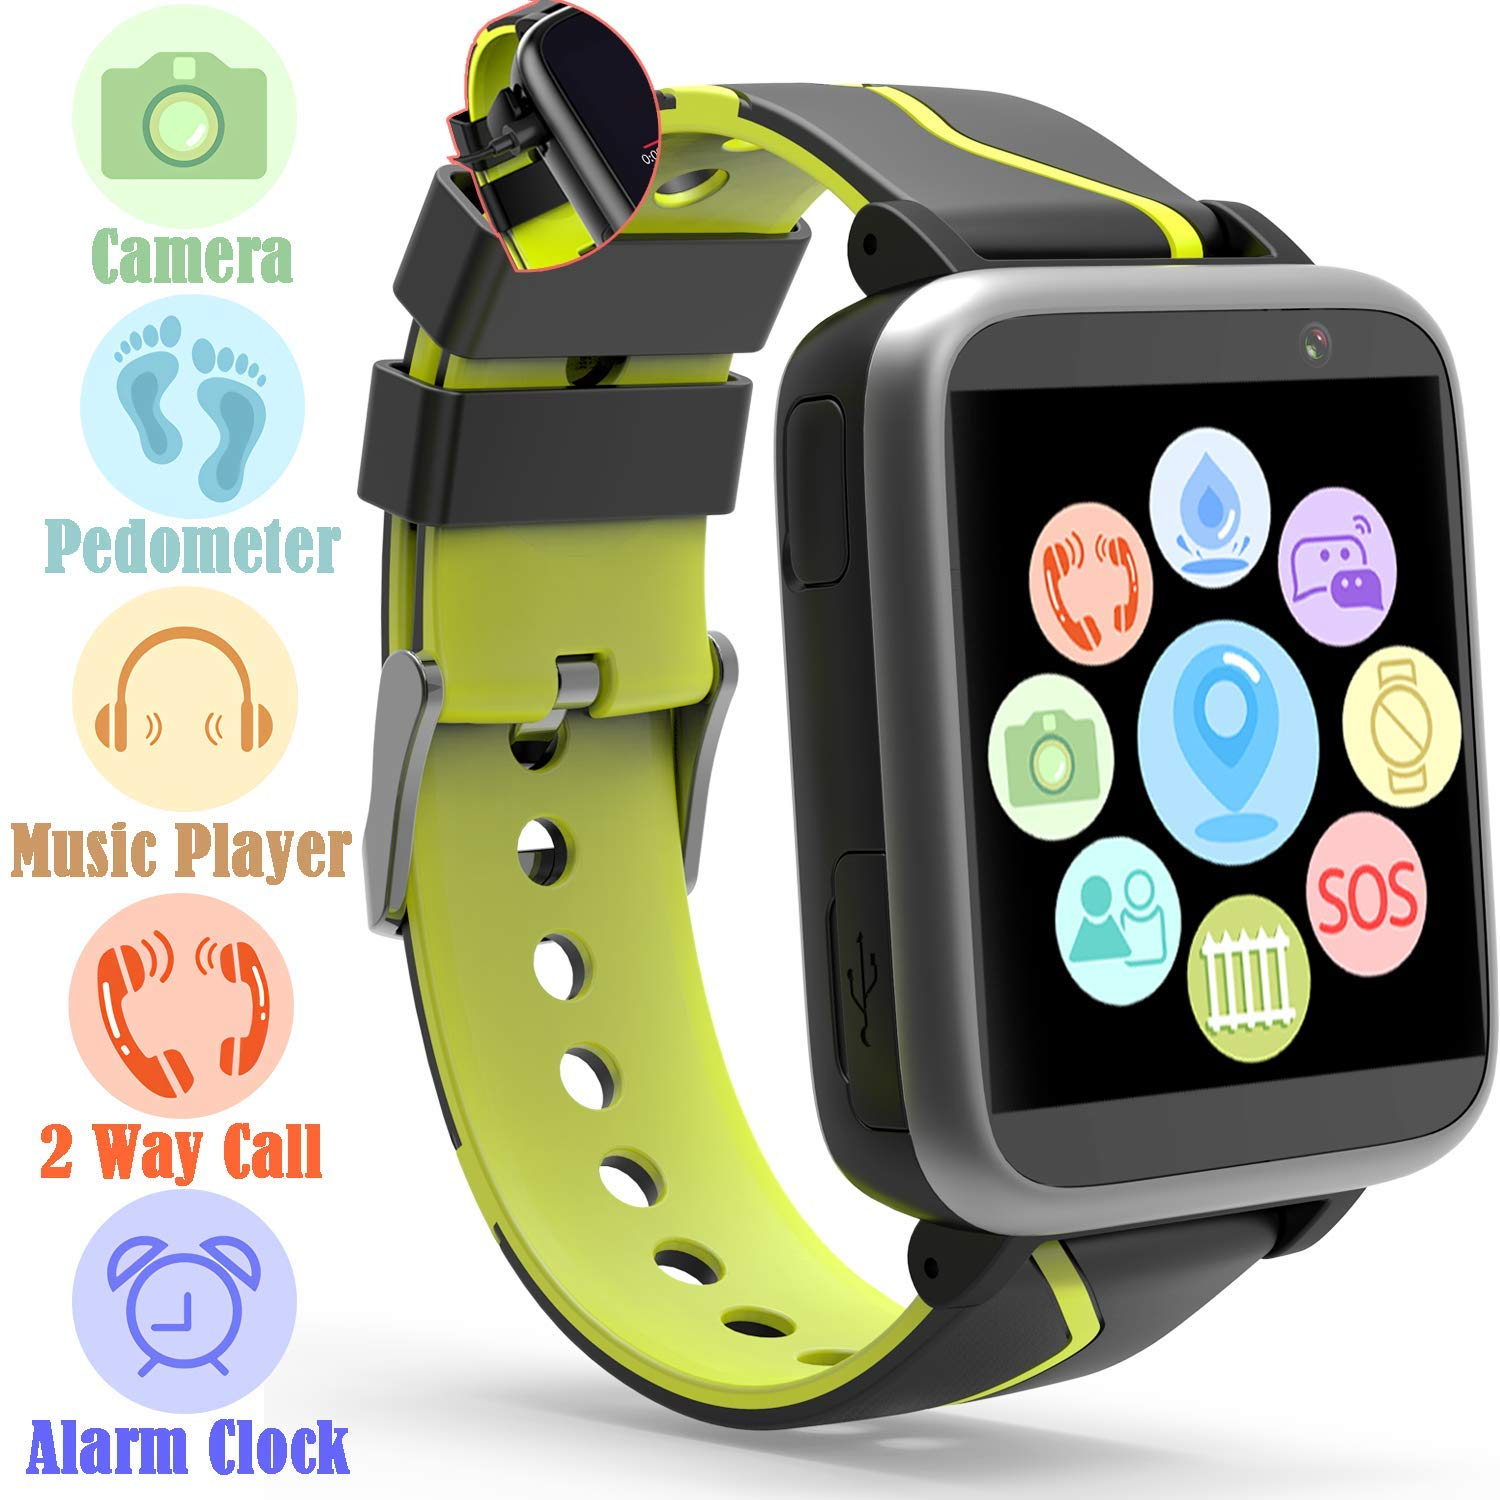 Jesam Kids Music Player Smart Watch - Smart Watch with Mp3 FM Player Watch [with 1GB Micro SD Card] and Camera Flashlight SIM Slot Phone Call Voice Chat for Students Age 4-12 (Black&Yellow) by Jesam (Image #1)